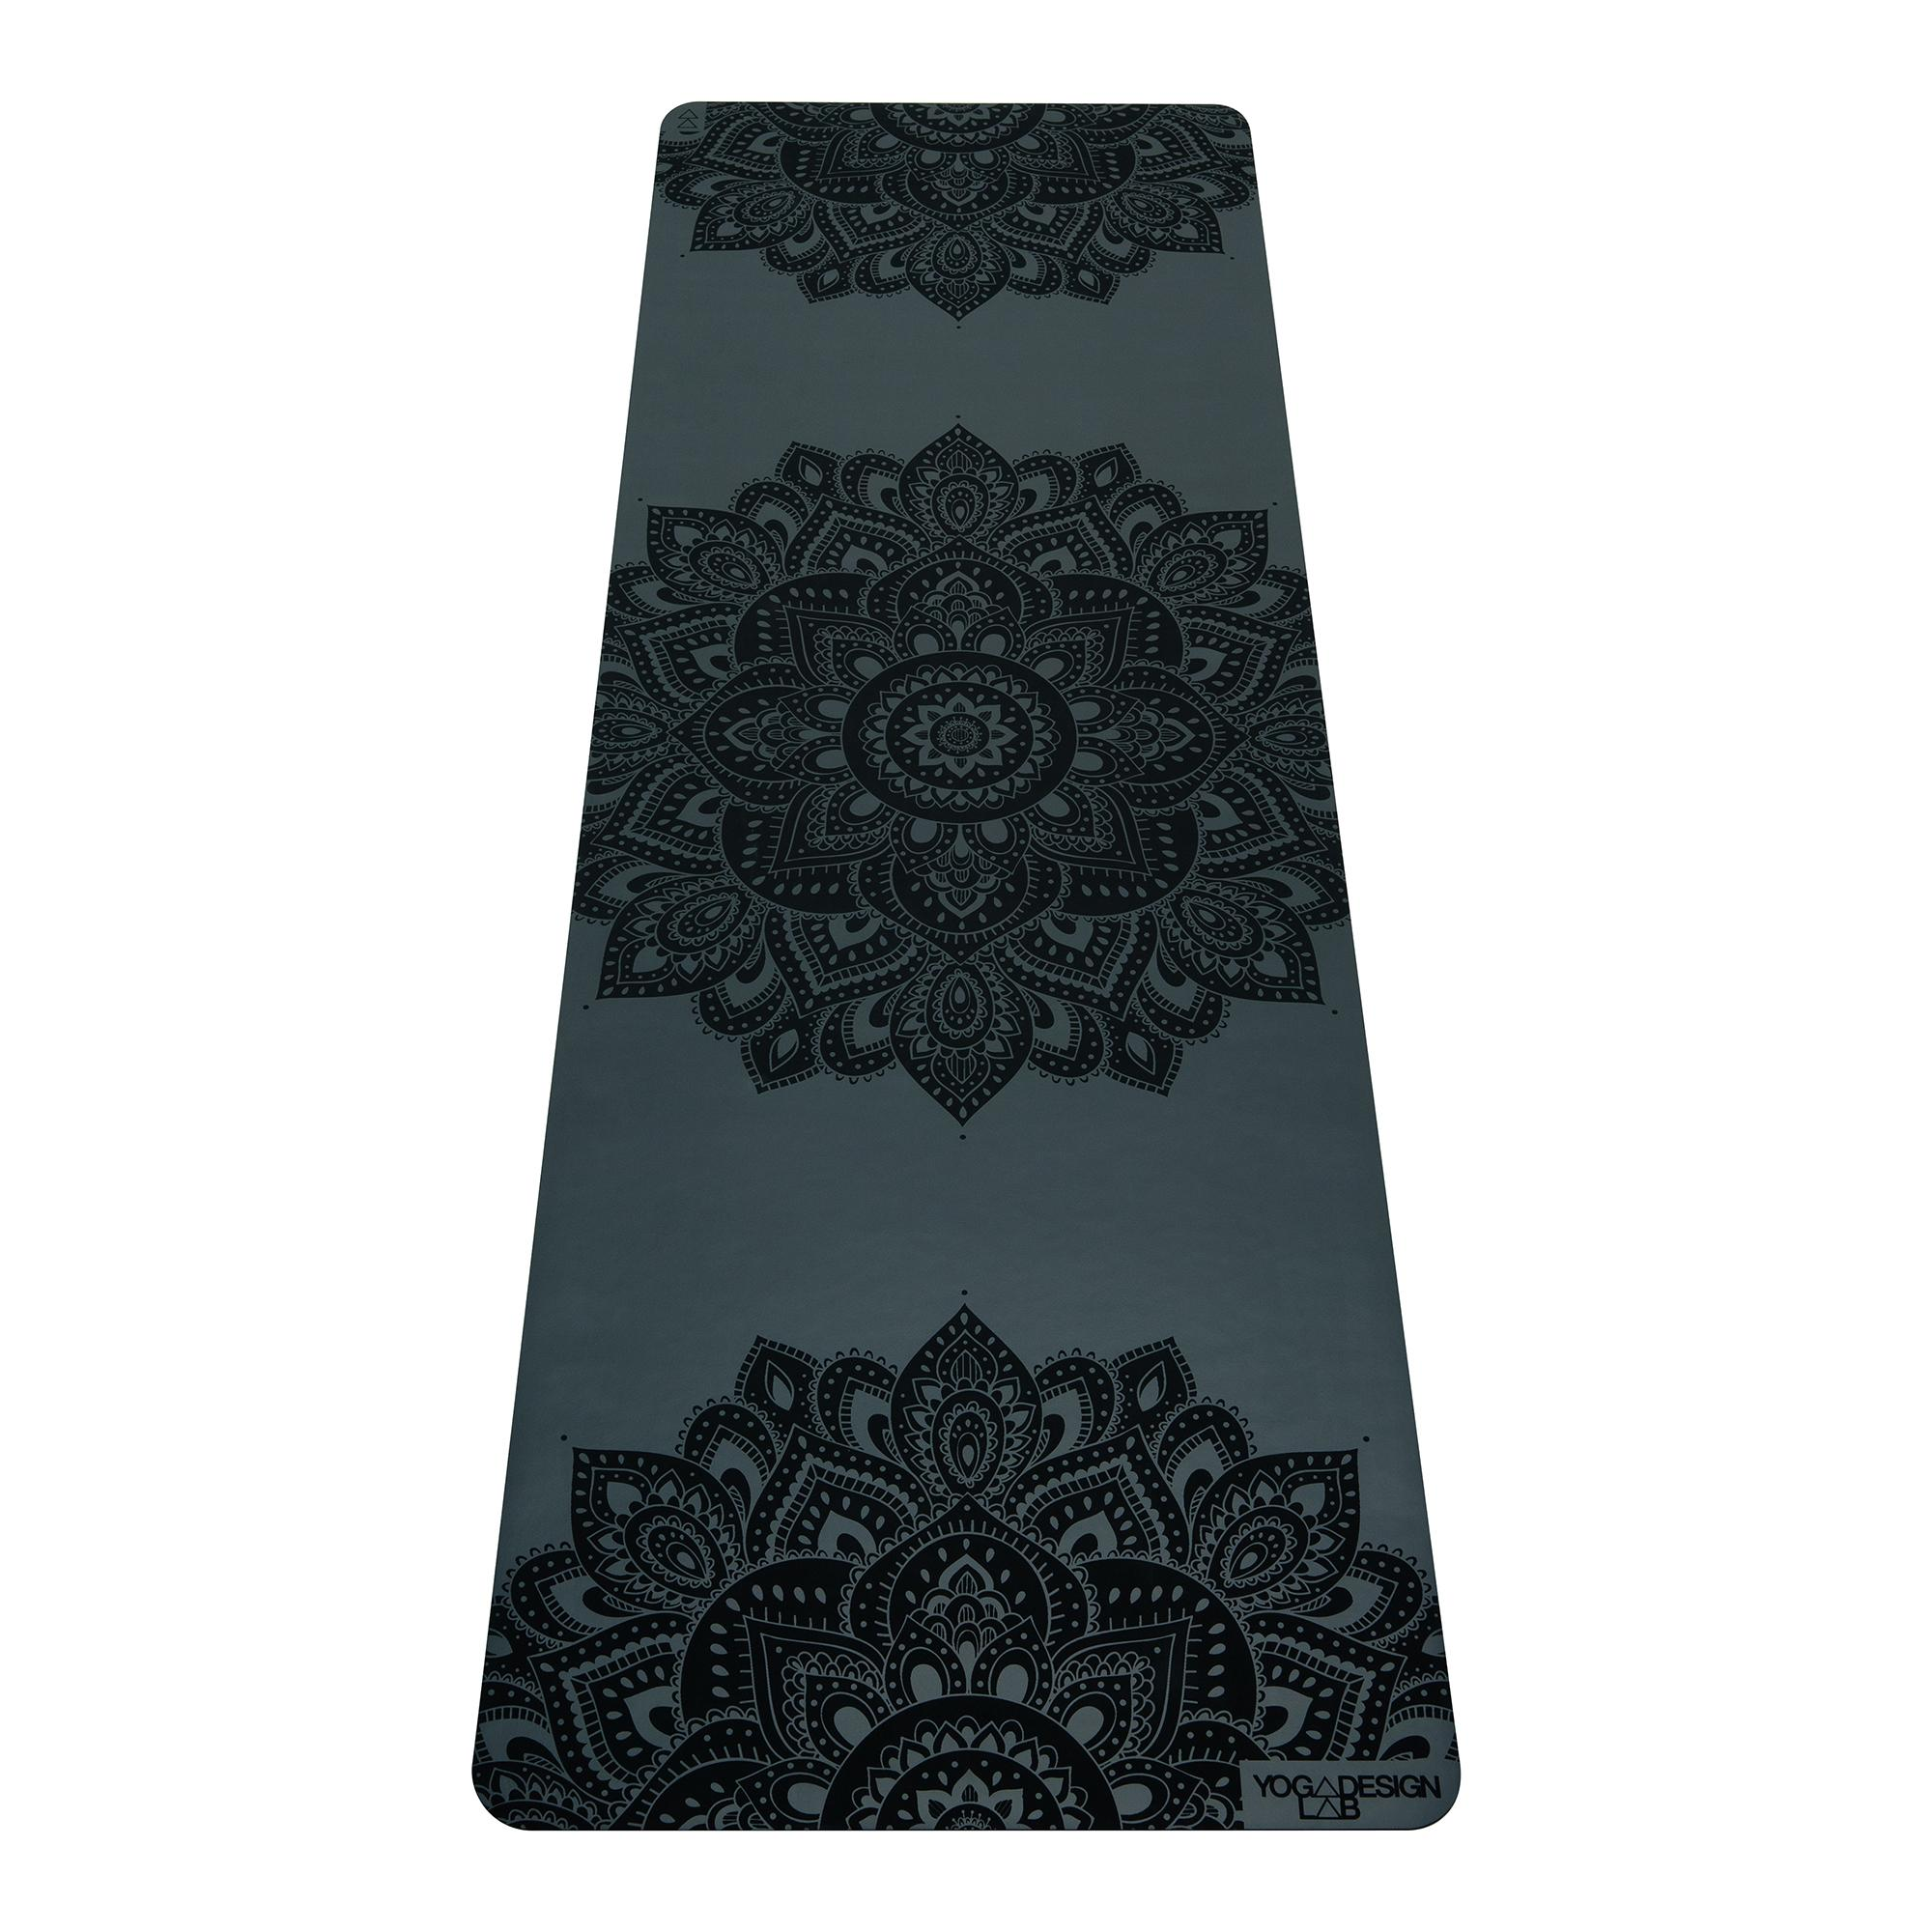 3.0mm Infinity Yoga Mat - Mandala Charcoal